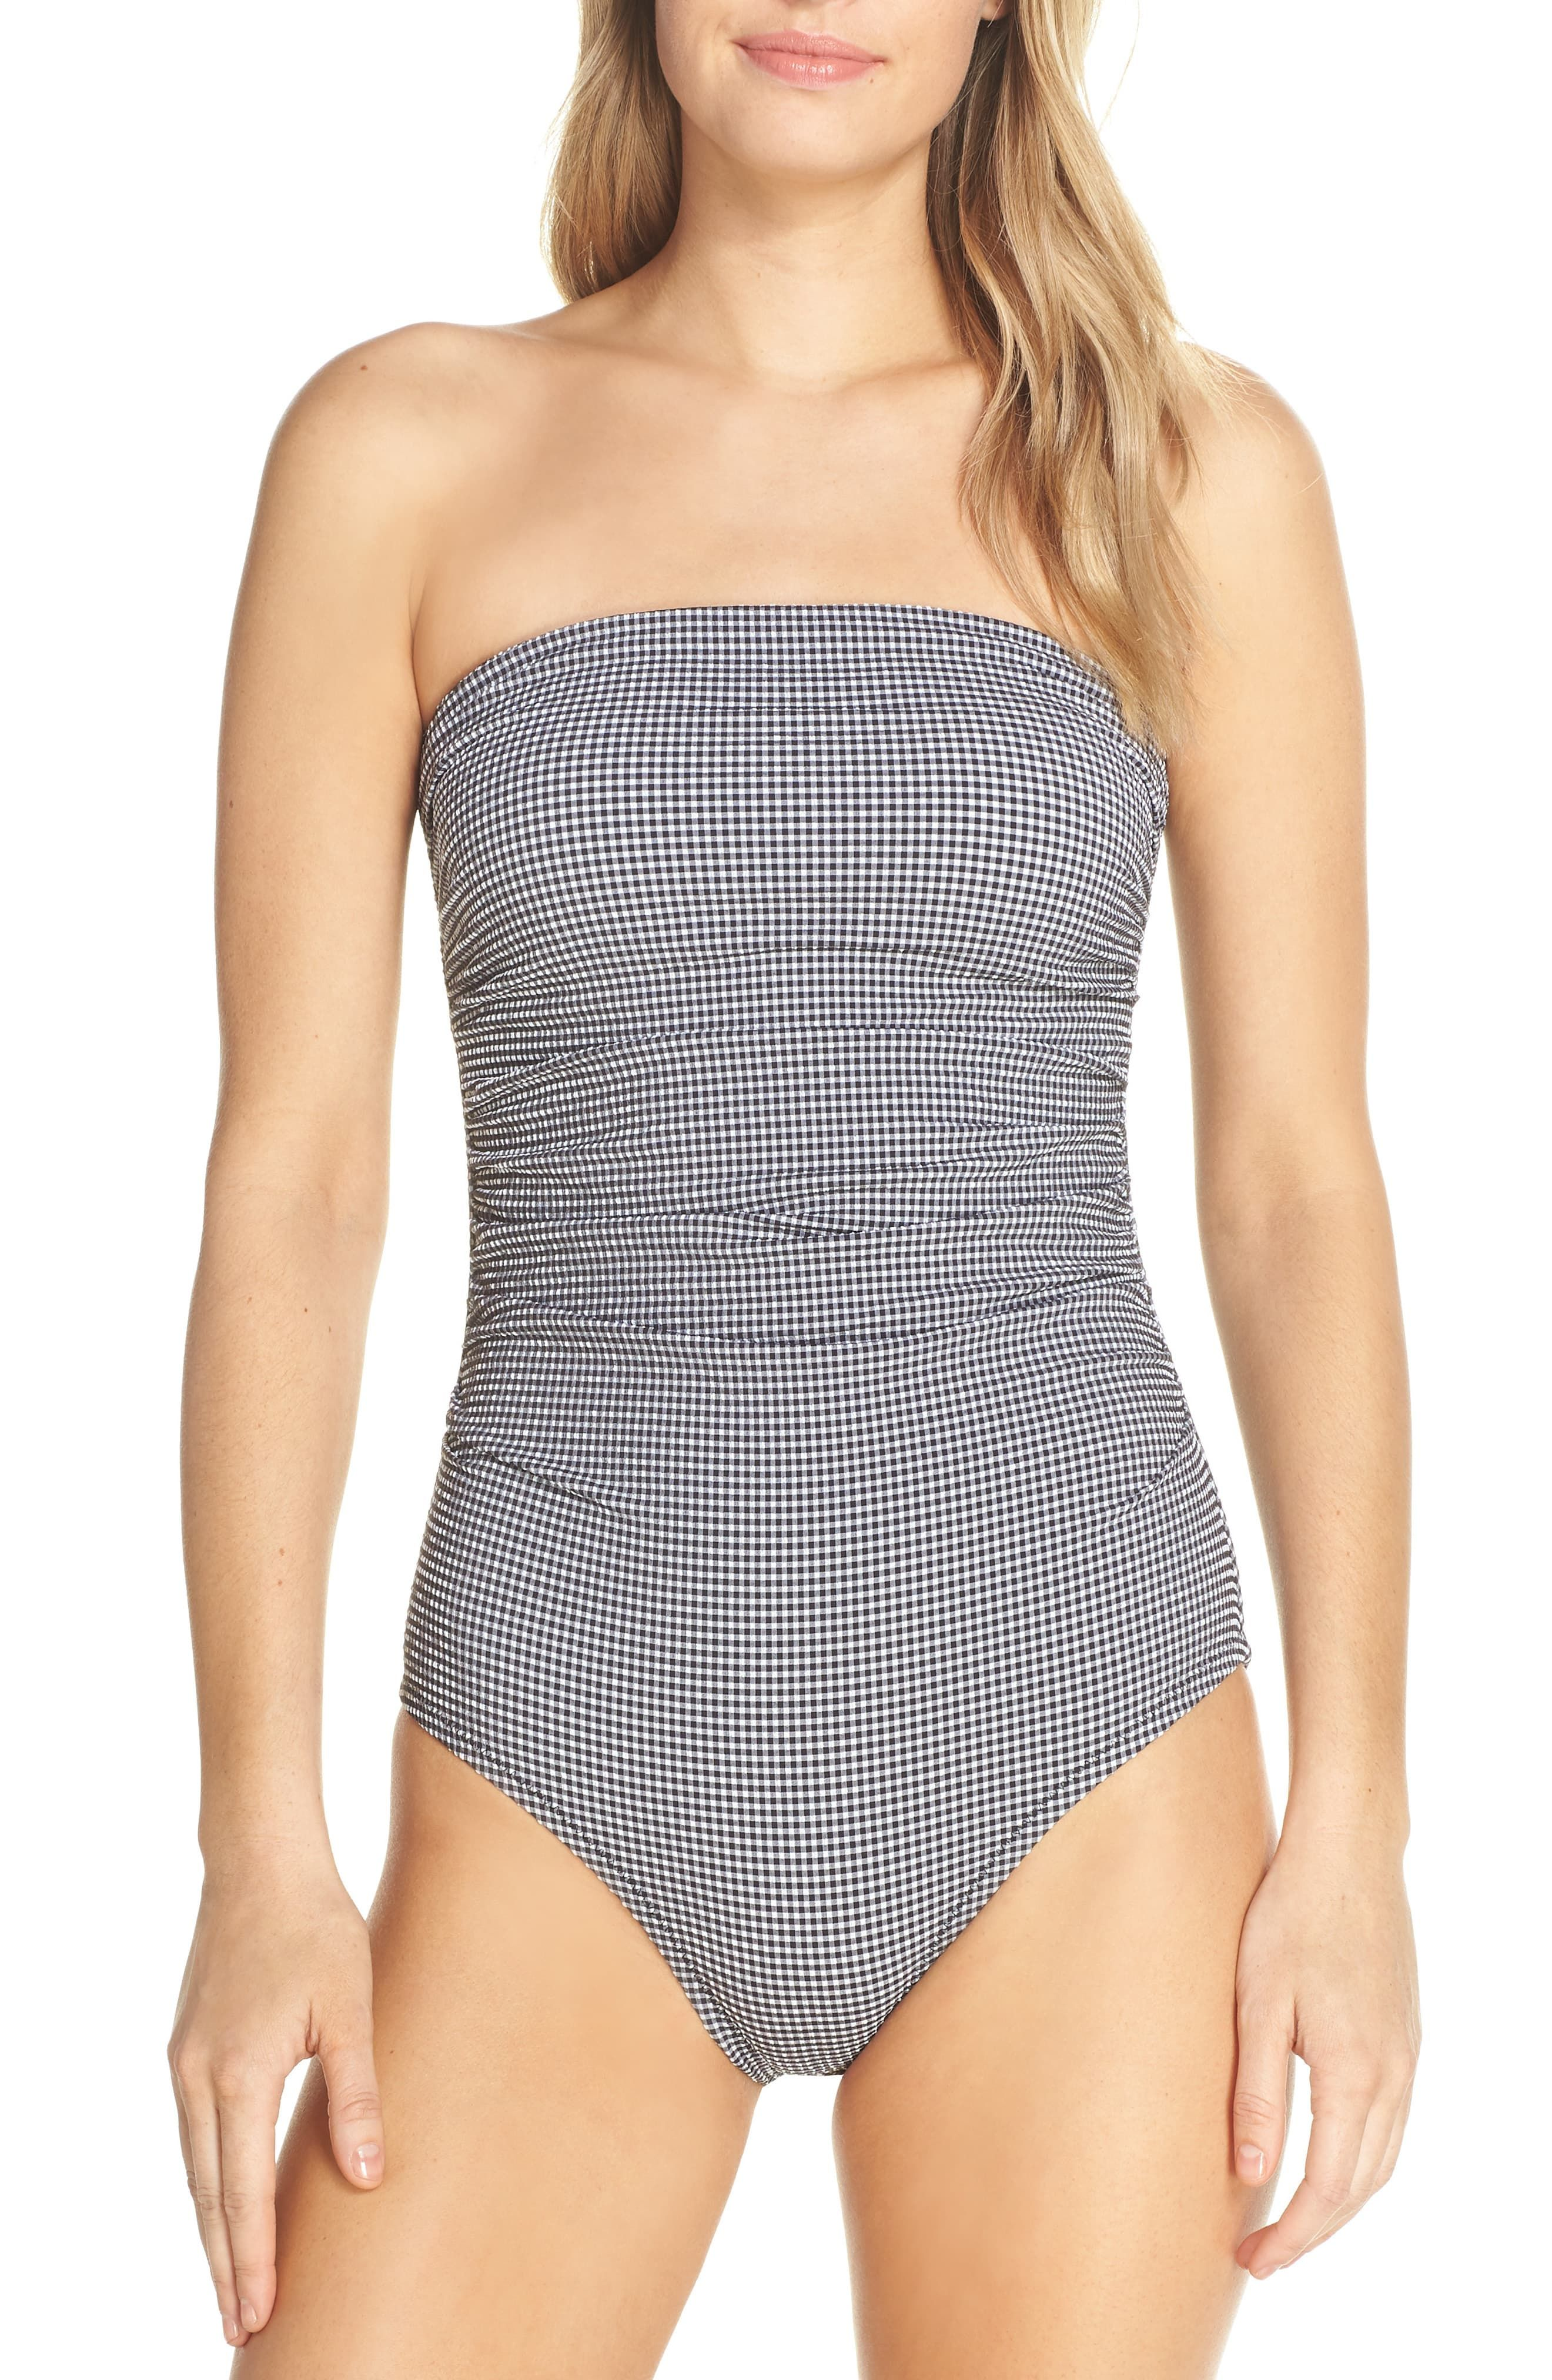 02944f5f9b499 Women's J.crew Gingham Ruched Bandeau One-Piece Swimsuit, Size 10 - Black